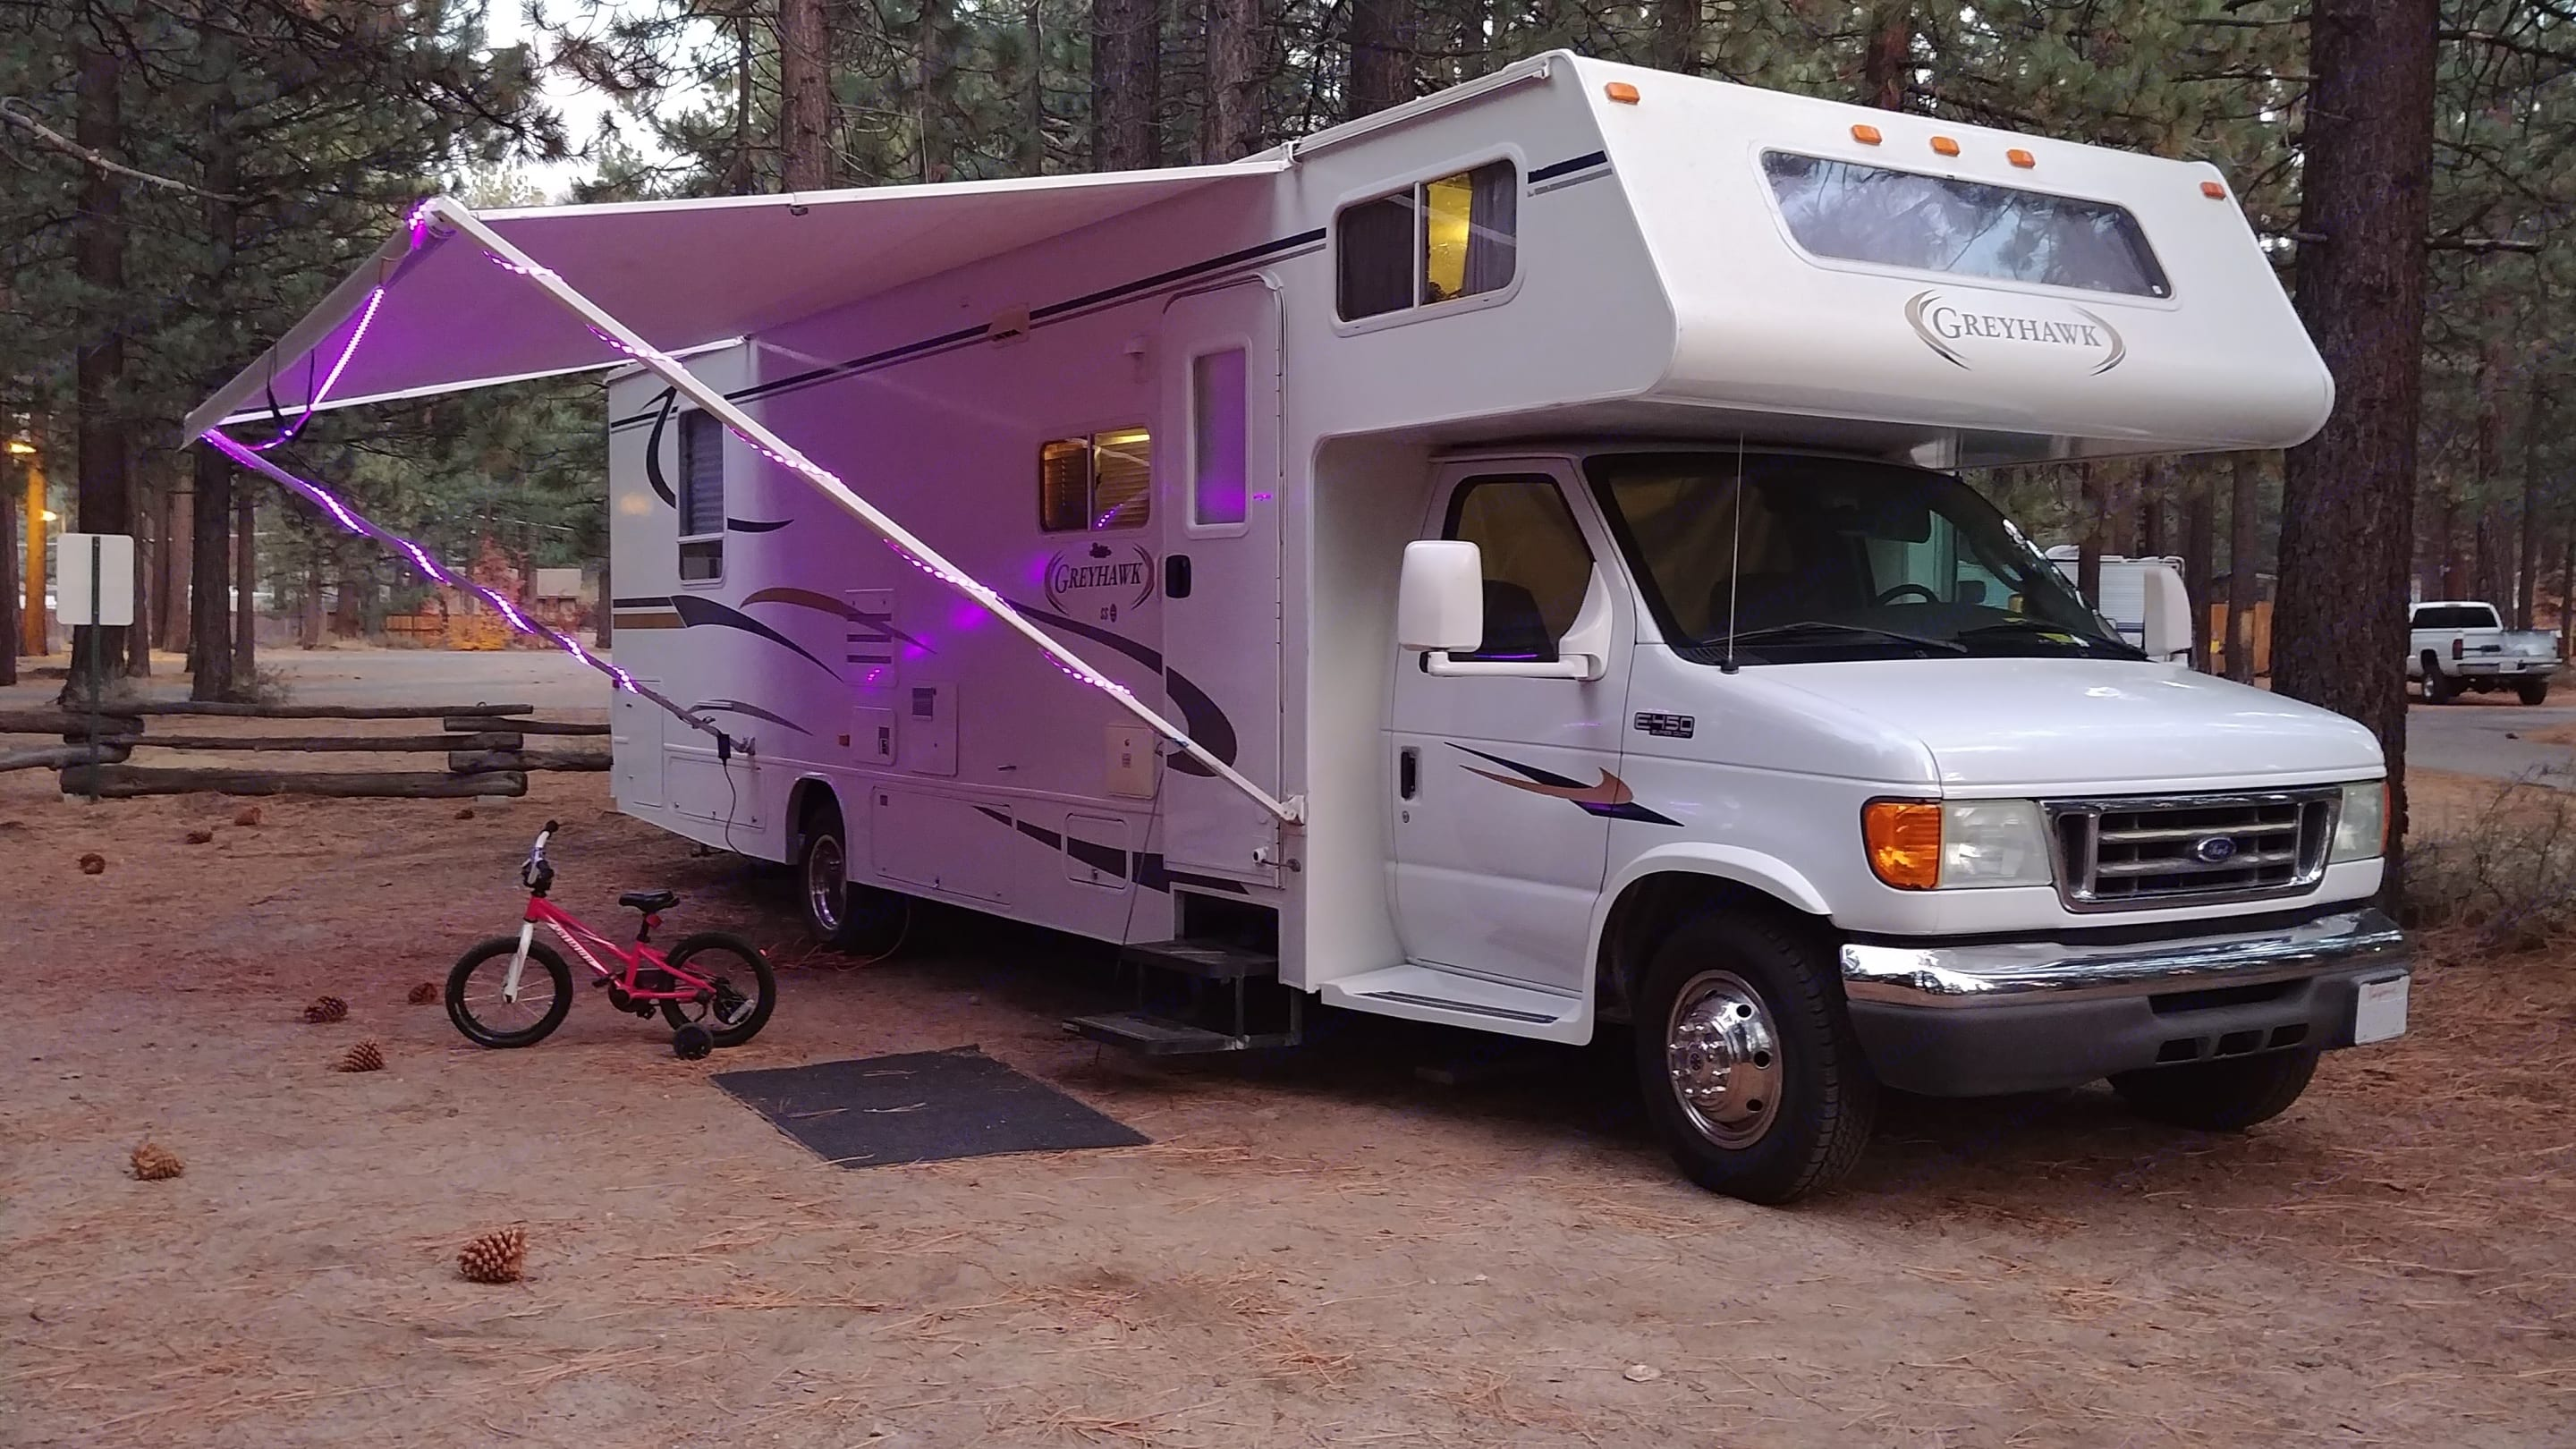 Bike not included. Our daughter wouldn't like that much :) Outside LED lights come with the camper though!. Jayco Greyhawk 2005